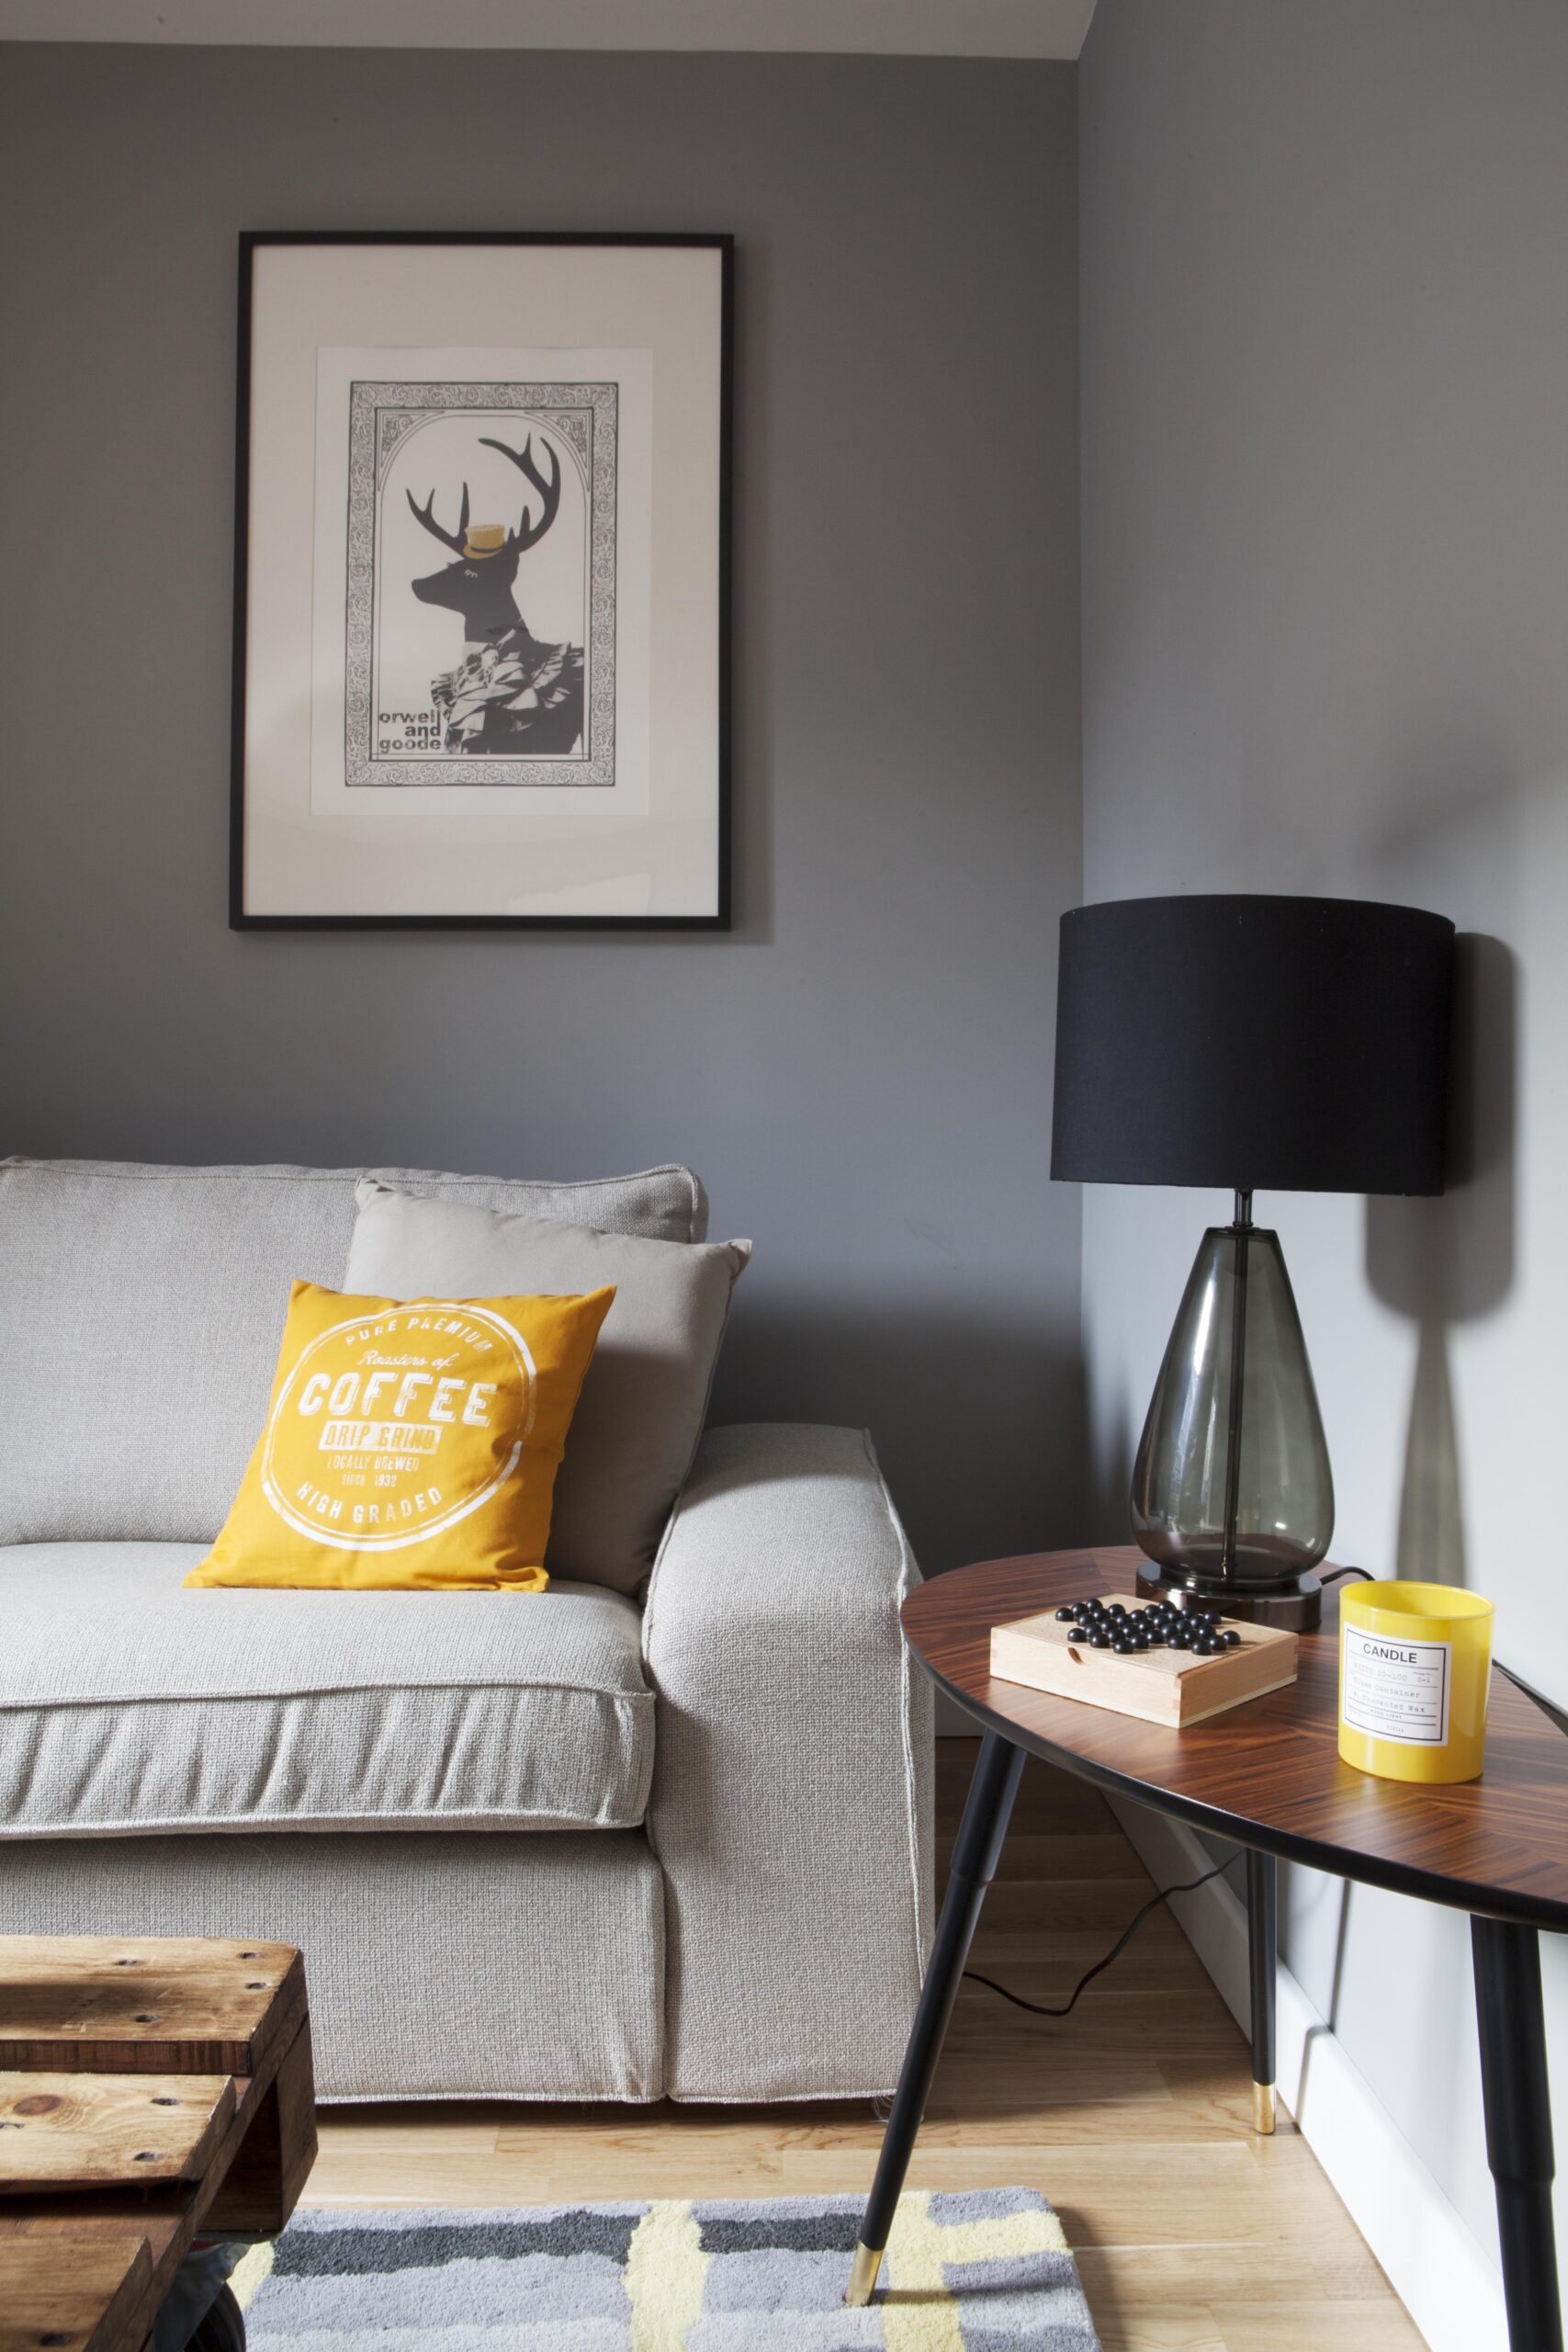 Decorating with Pantone Color of the Year 2021 - 'Illuminating' and 'Ultimate Gray' -  IMAGE: via Studio Morton